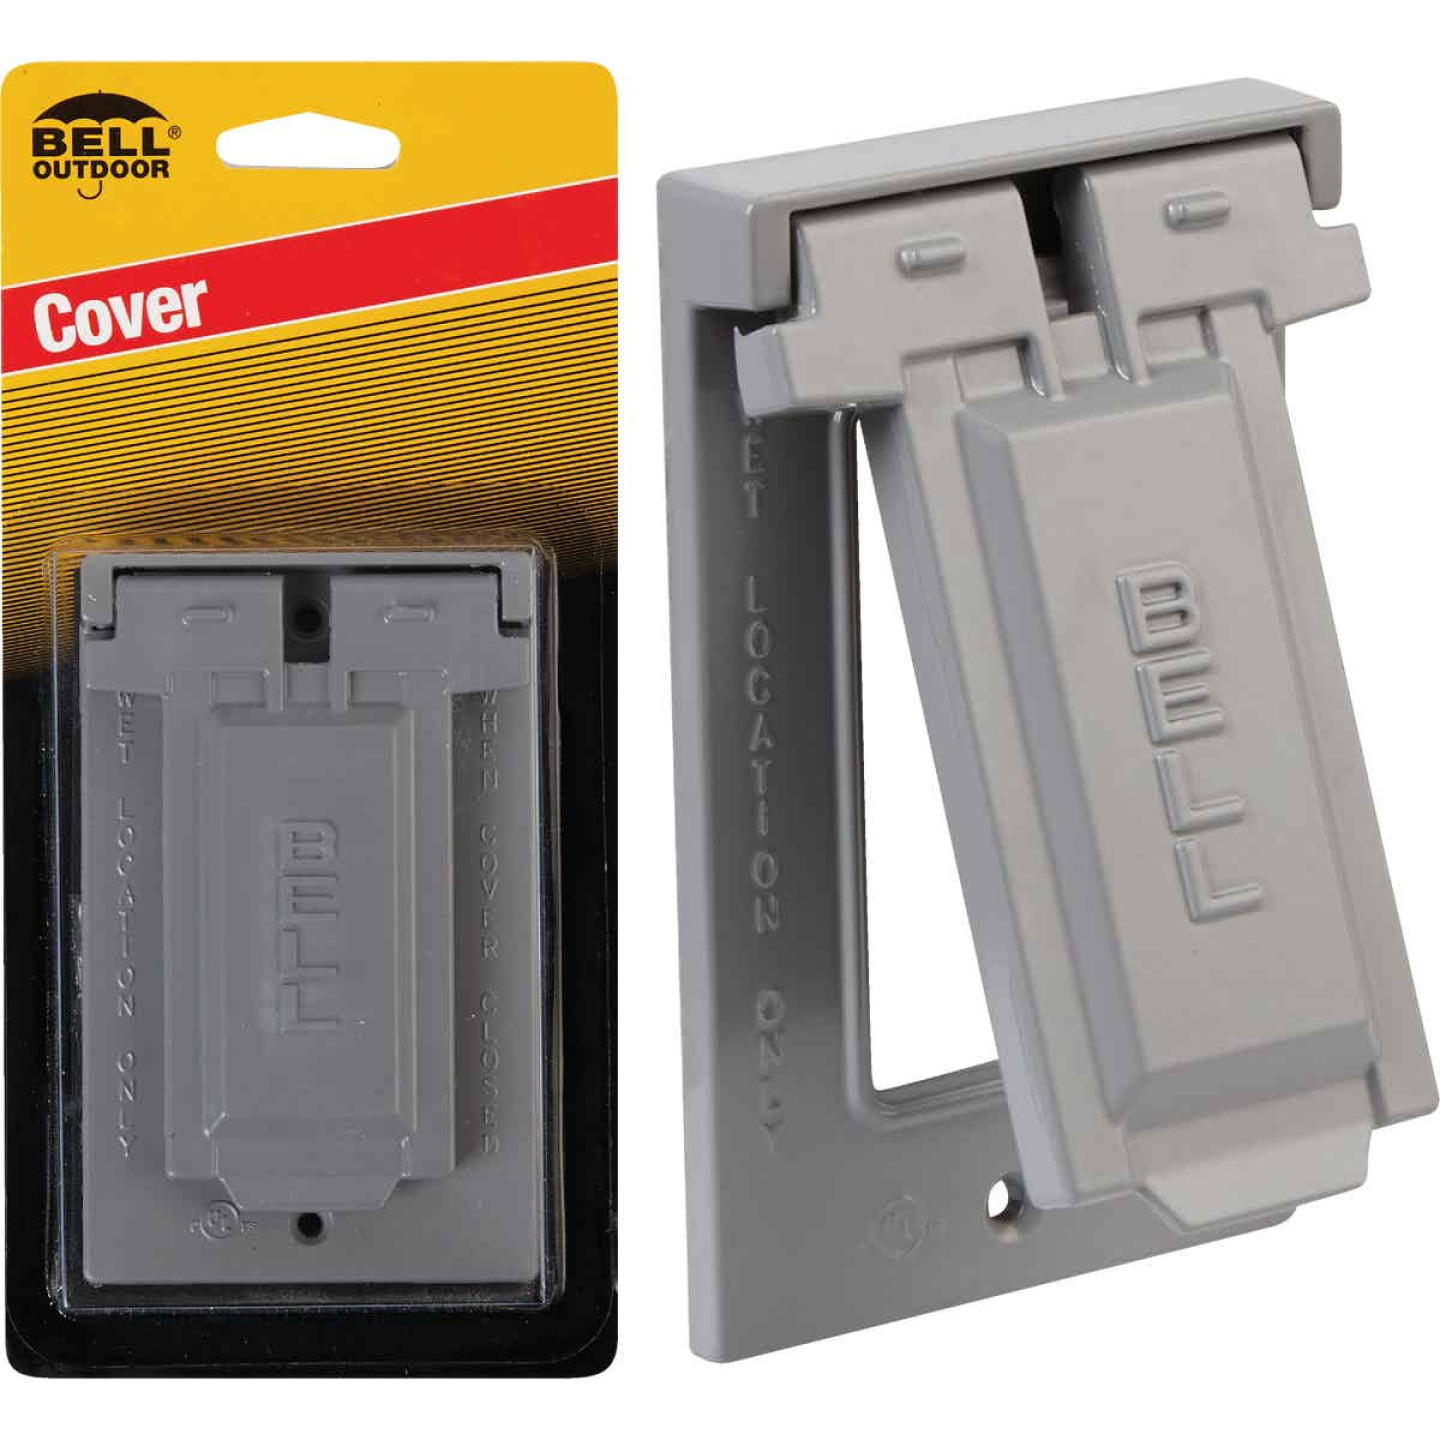 Bell Single Gang Vertical Mount Die-Cast Metal Gray Weatherproof GFCI Outdoor Outlet Cover Image 1